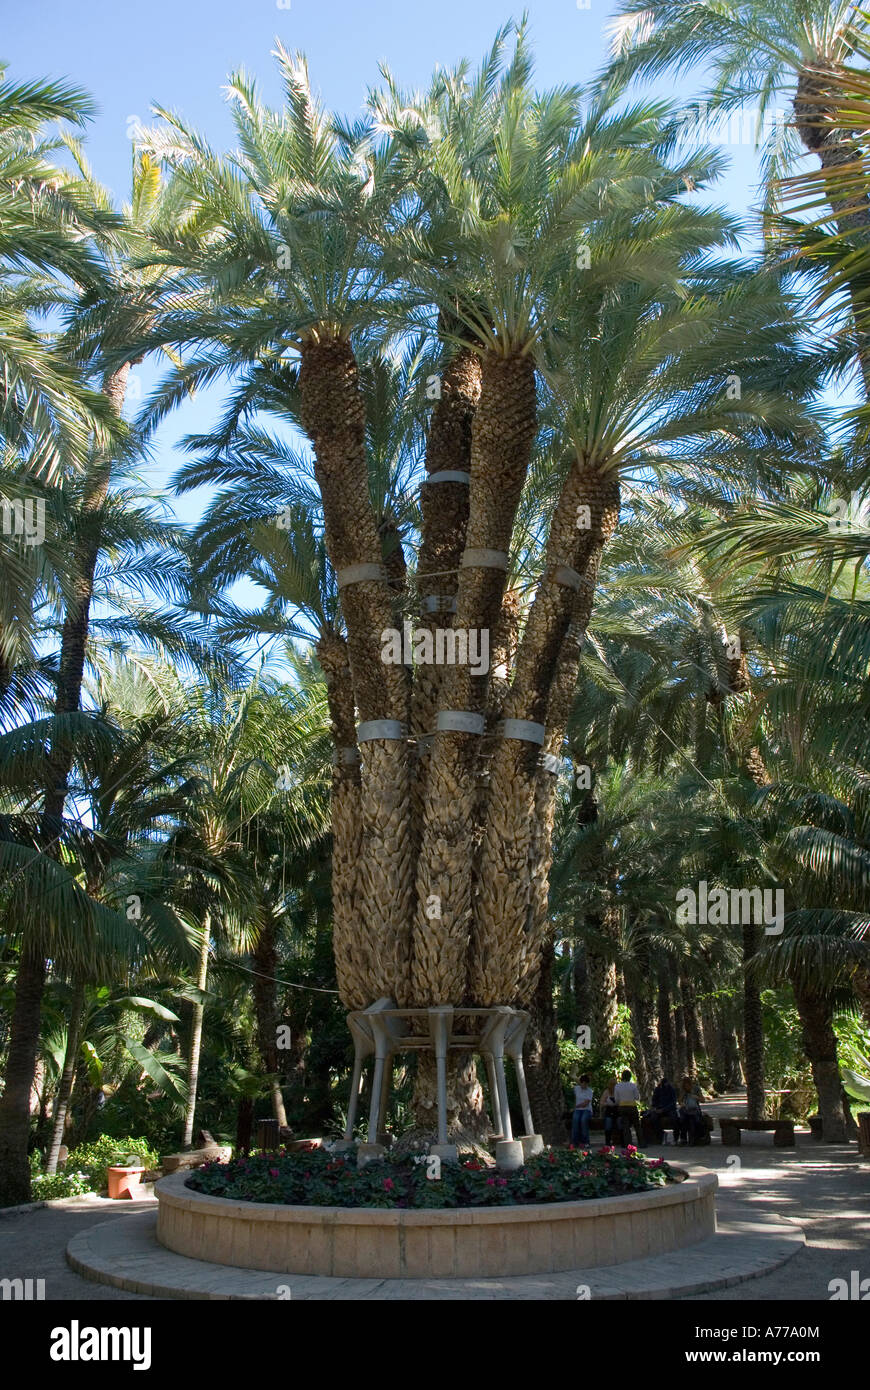 Imperial plam tree Priest Orchard in The Elx Palm Grove ELCHE Spain - Stock Image